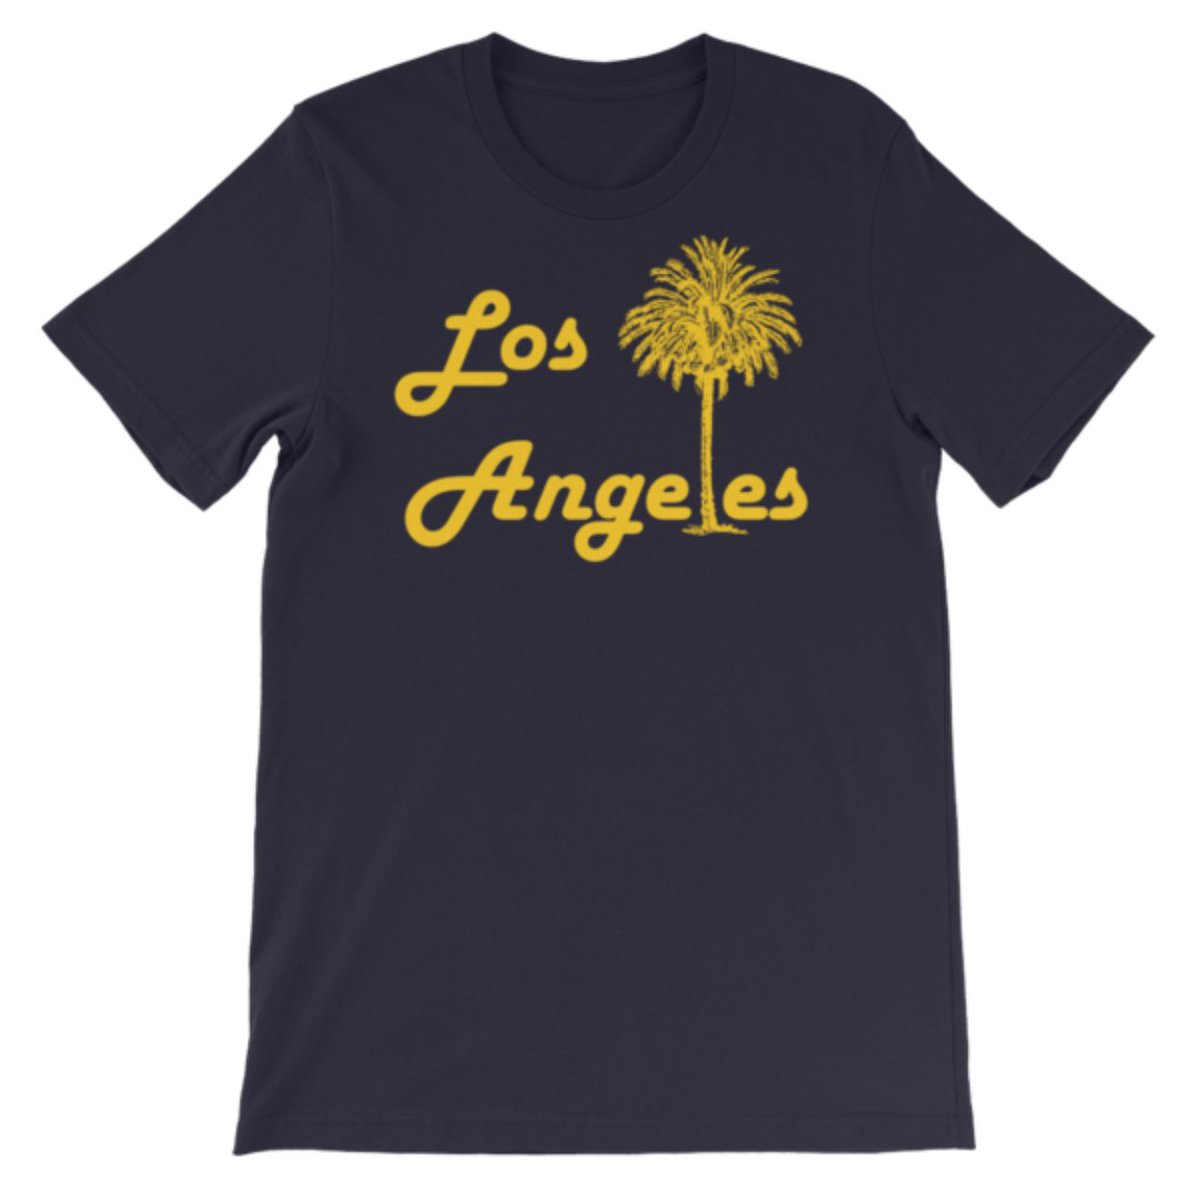 We're not playing favorites for the #superbowl but you can! . Get your #LosAngeles gear here 👇 https://t.co/I2ne37iTEt . #allographictees #SBLIII #biggame #superbowlLIII #superbowl53 #Rams #LARams #VamosRams #NEvsLA #LARvsNE #PatriotsvsRams #LA #LosAngelesRams #GoRams #RamsHouse https://t.co/nmYZPKZOqG